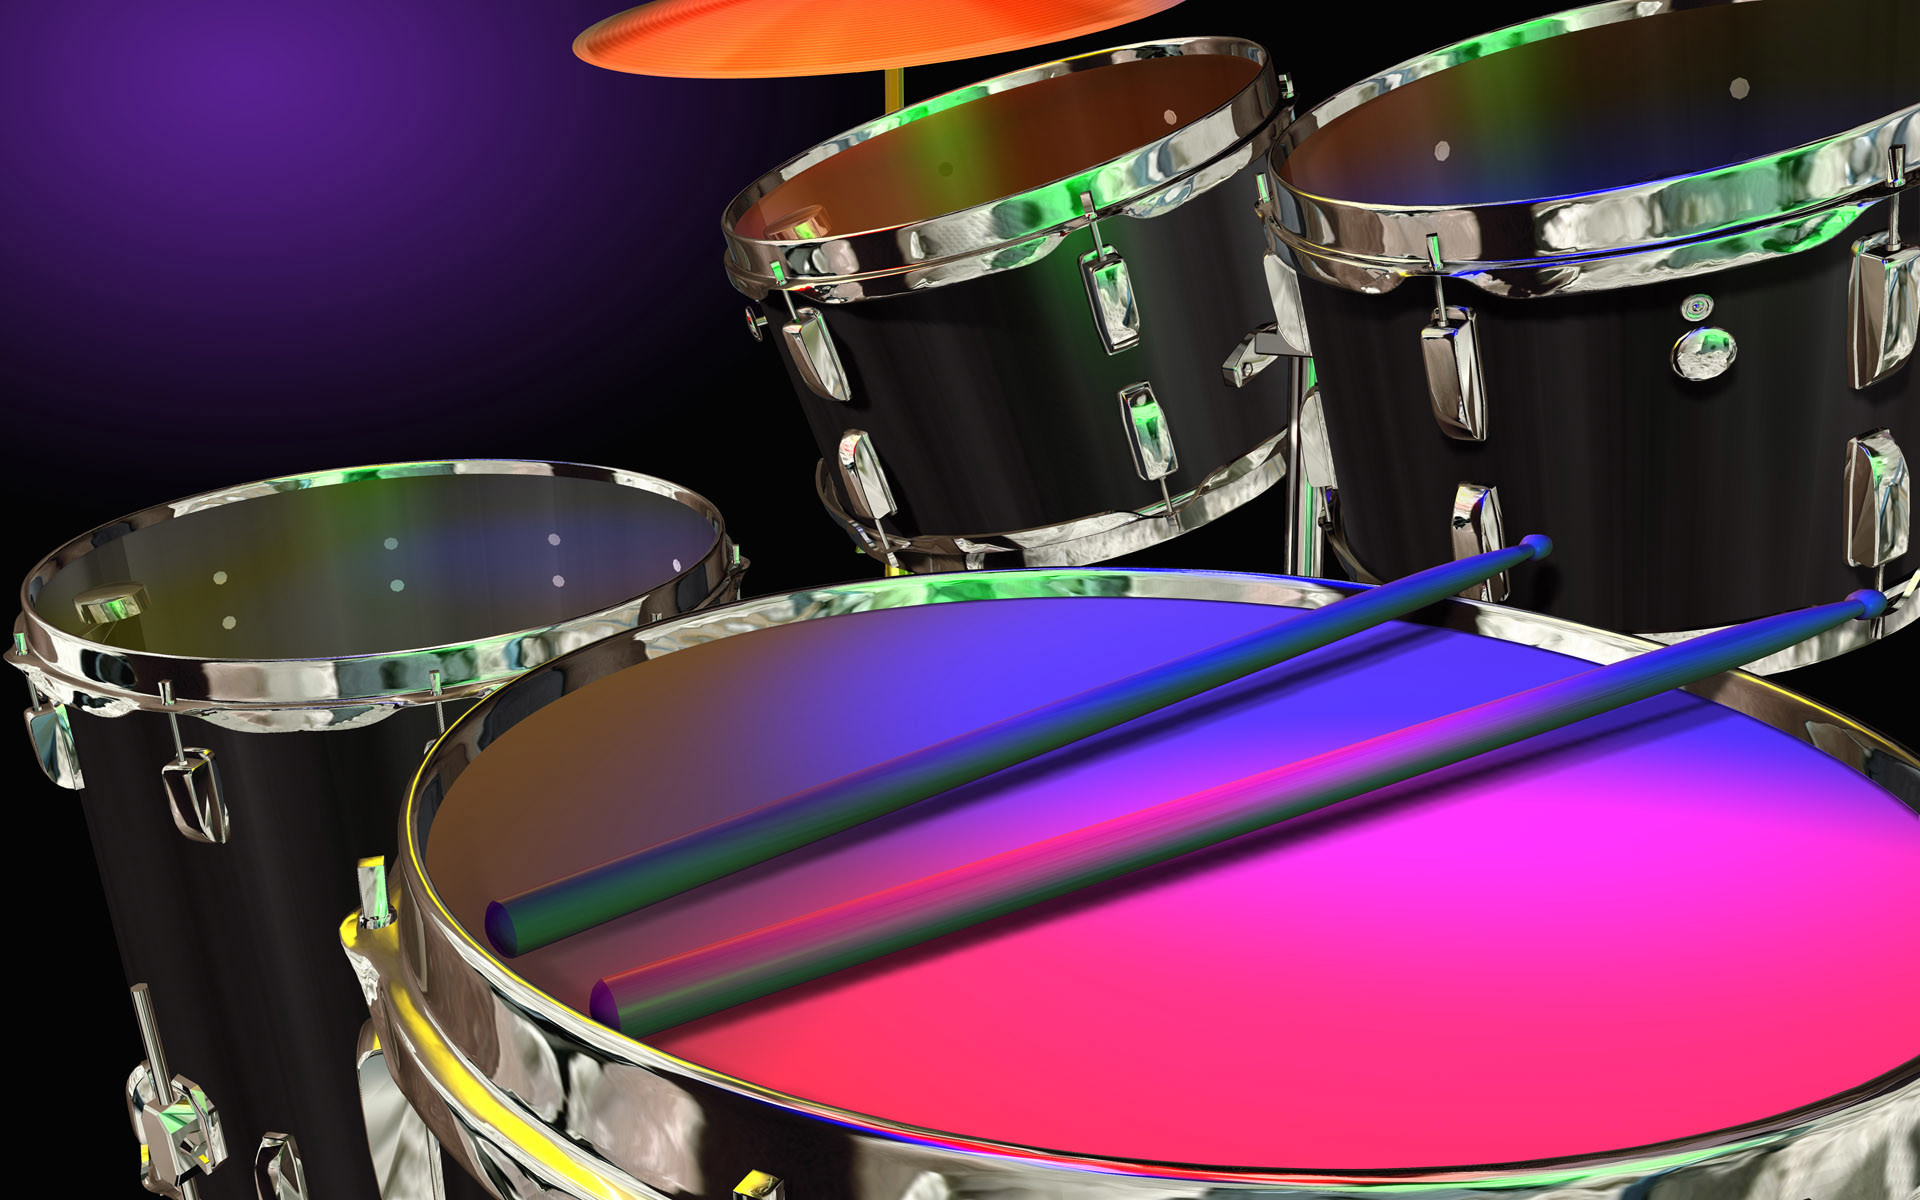 Drums Wallpapers: Drum Set Wallpaper (56+ Images